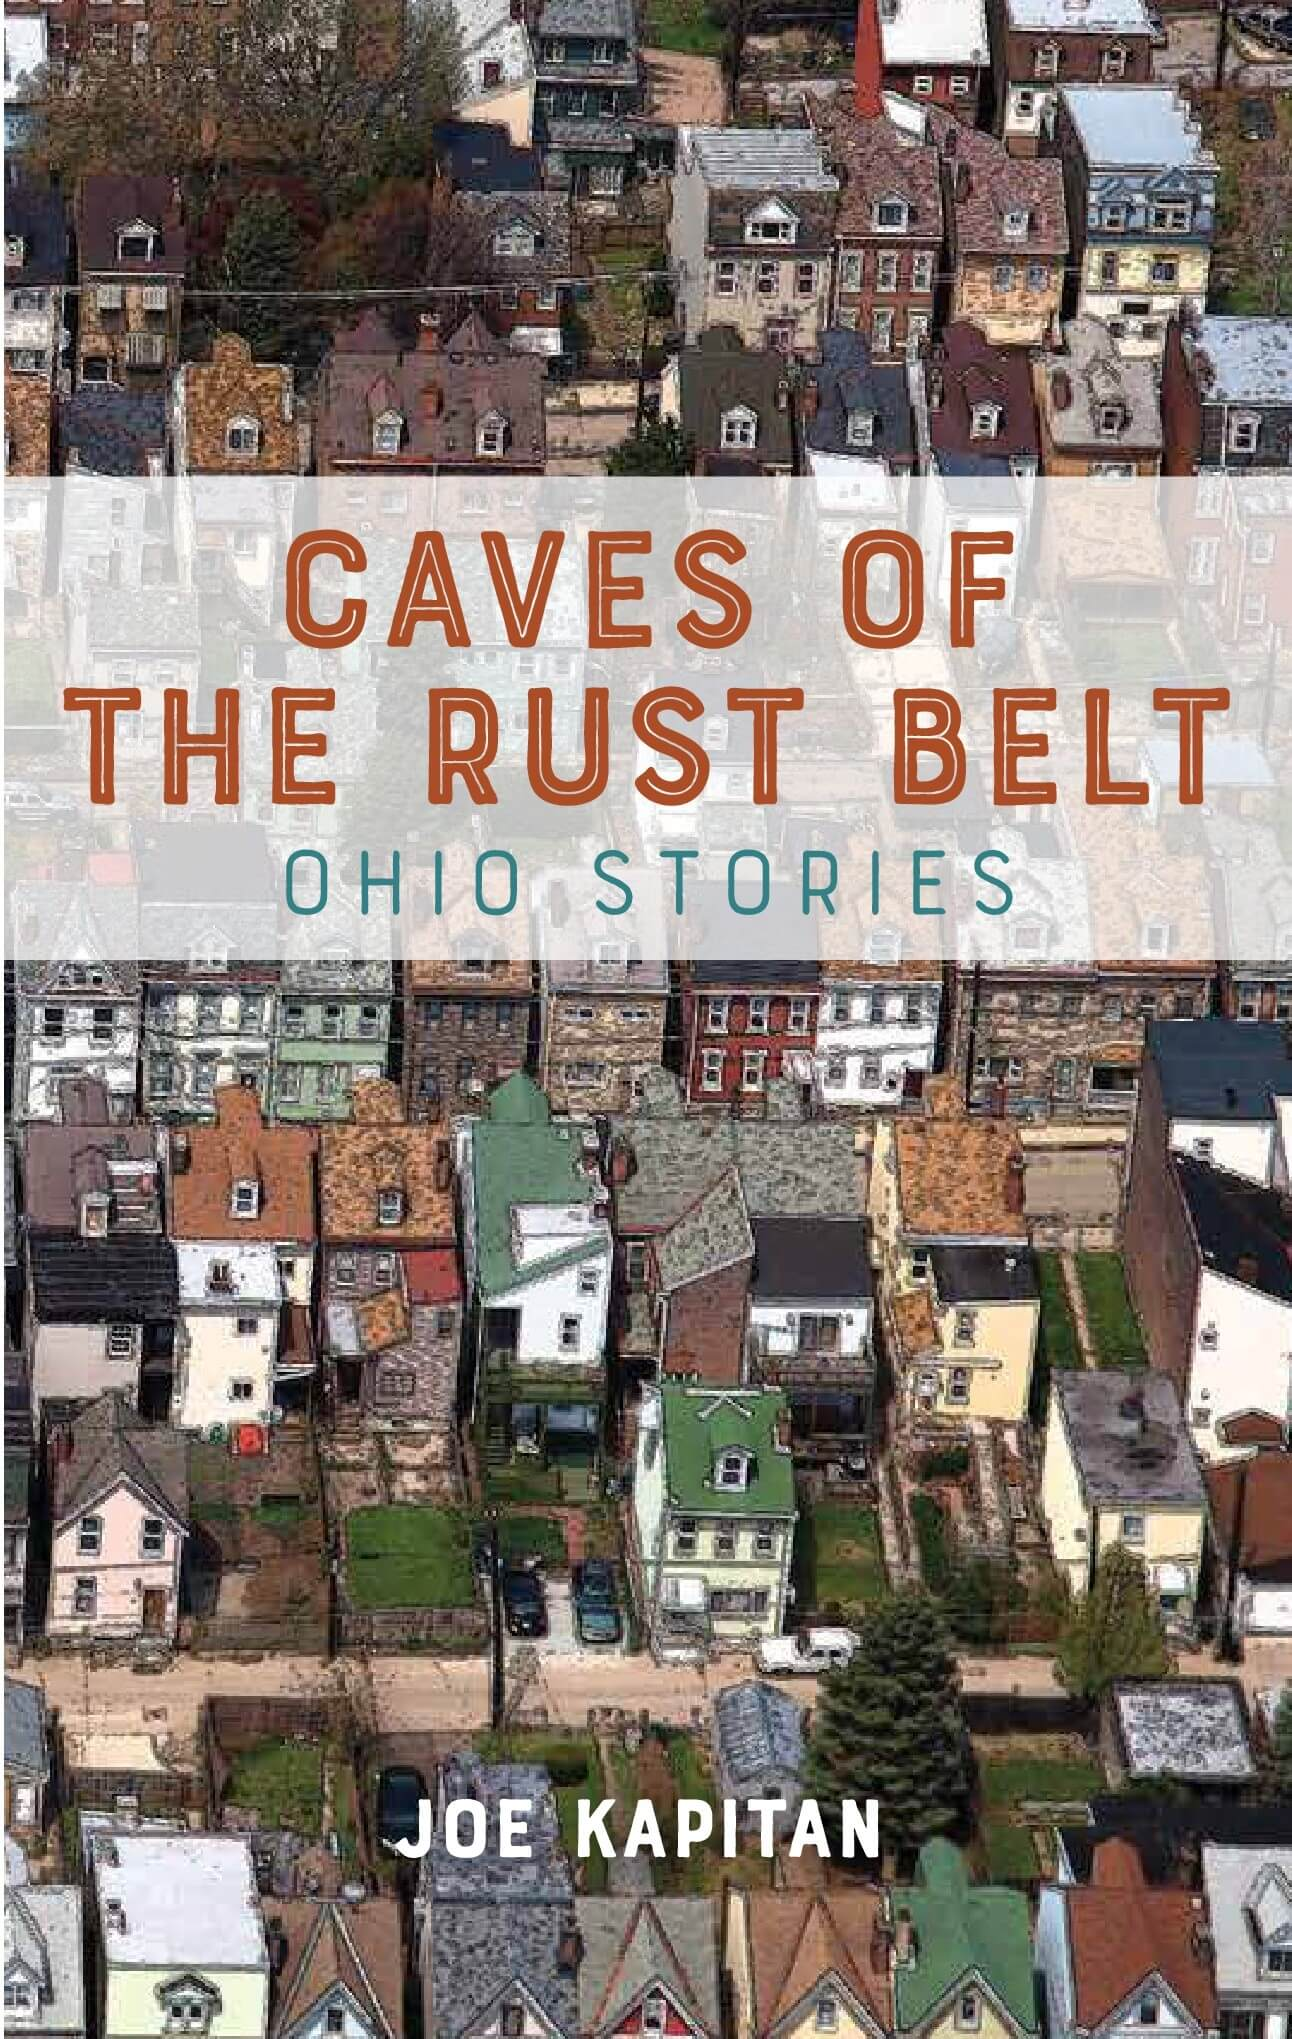 Caves of the Rust Belt book cover by Joe Kapitan